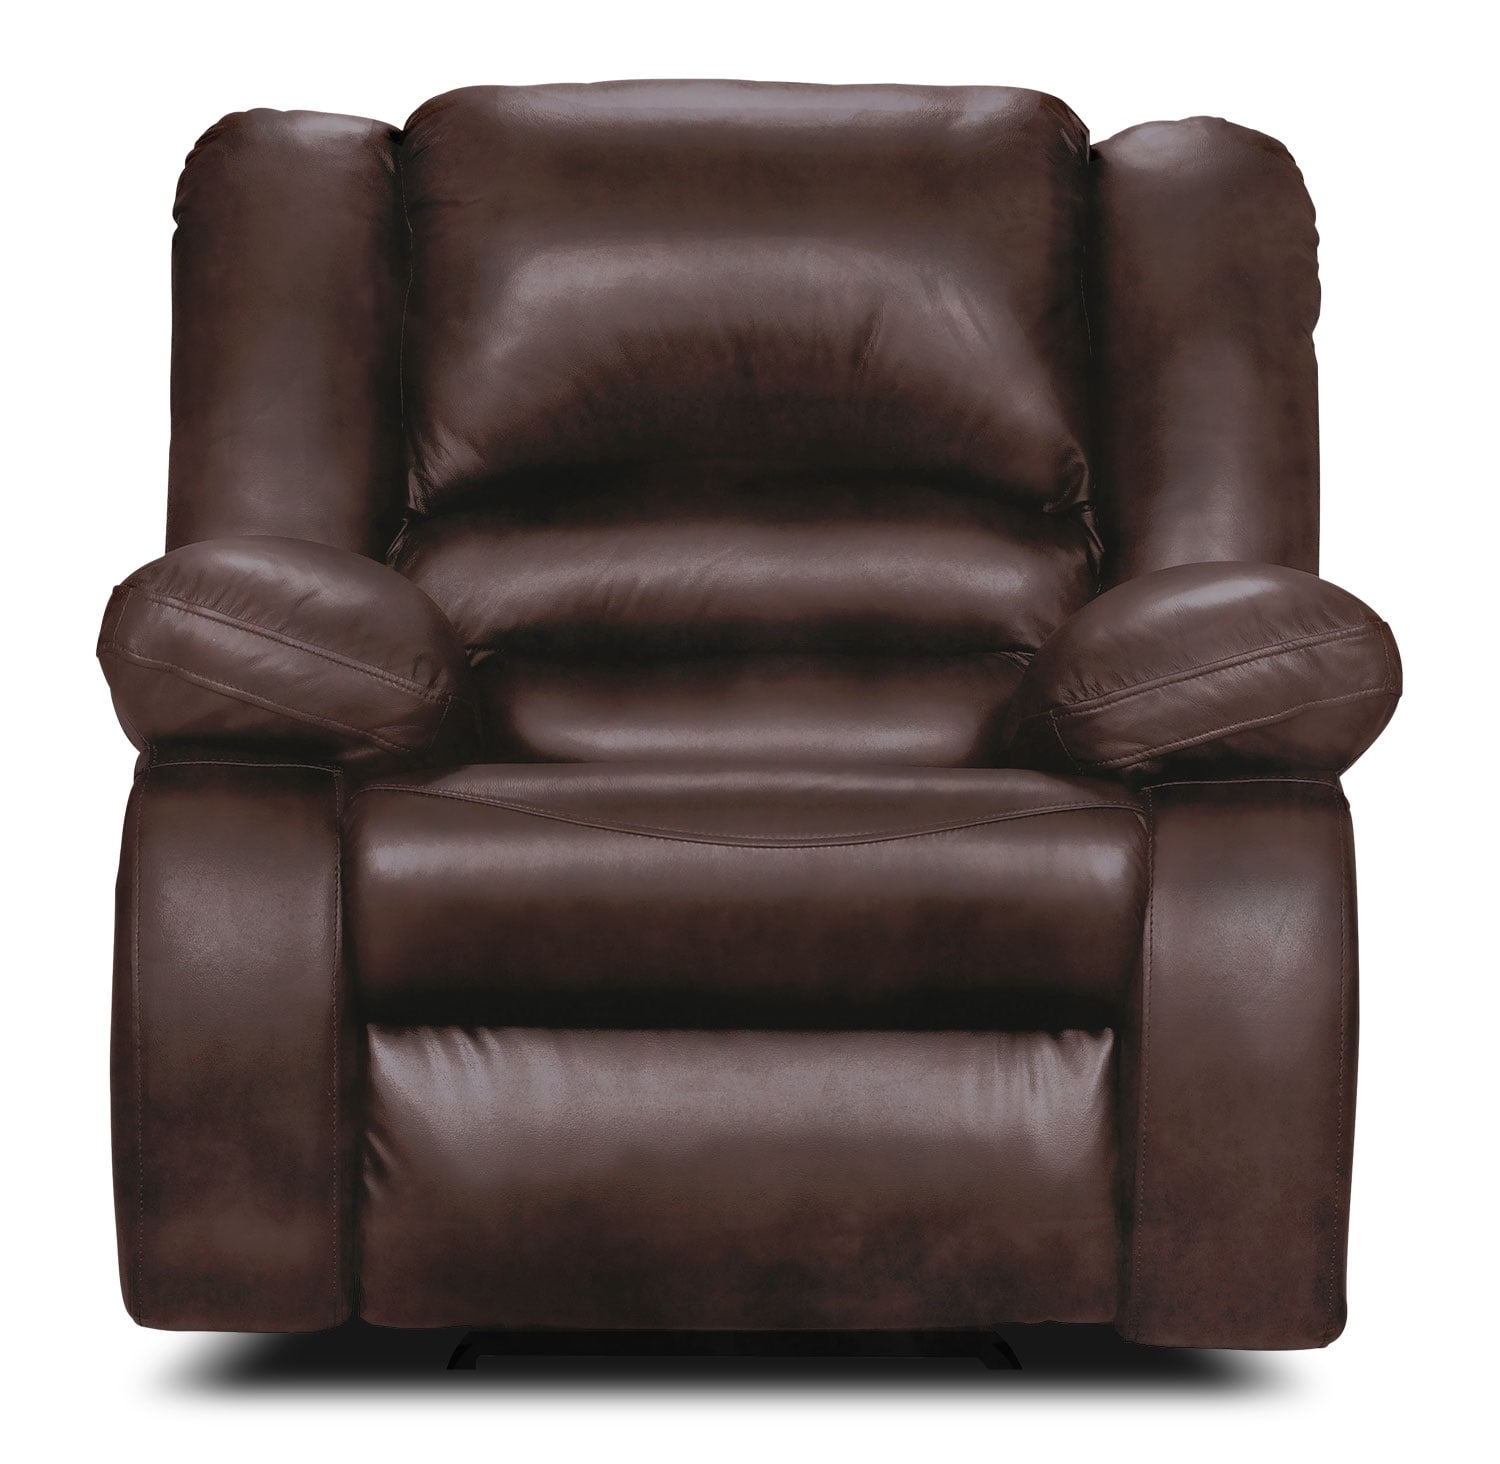 Living Room Furniture - Toreno Brown Genuine Leather Reclining Chair